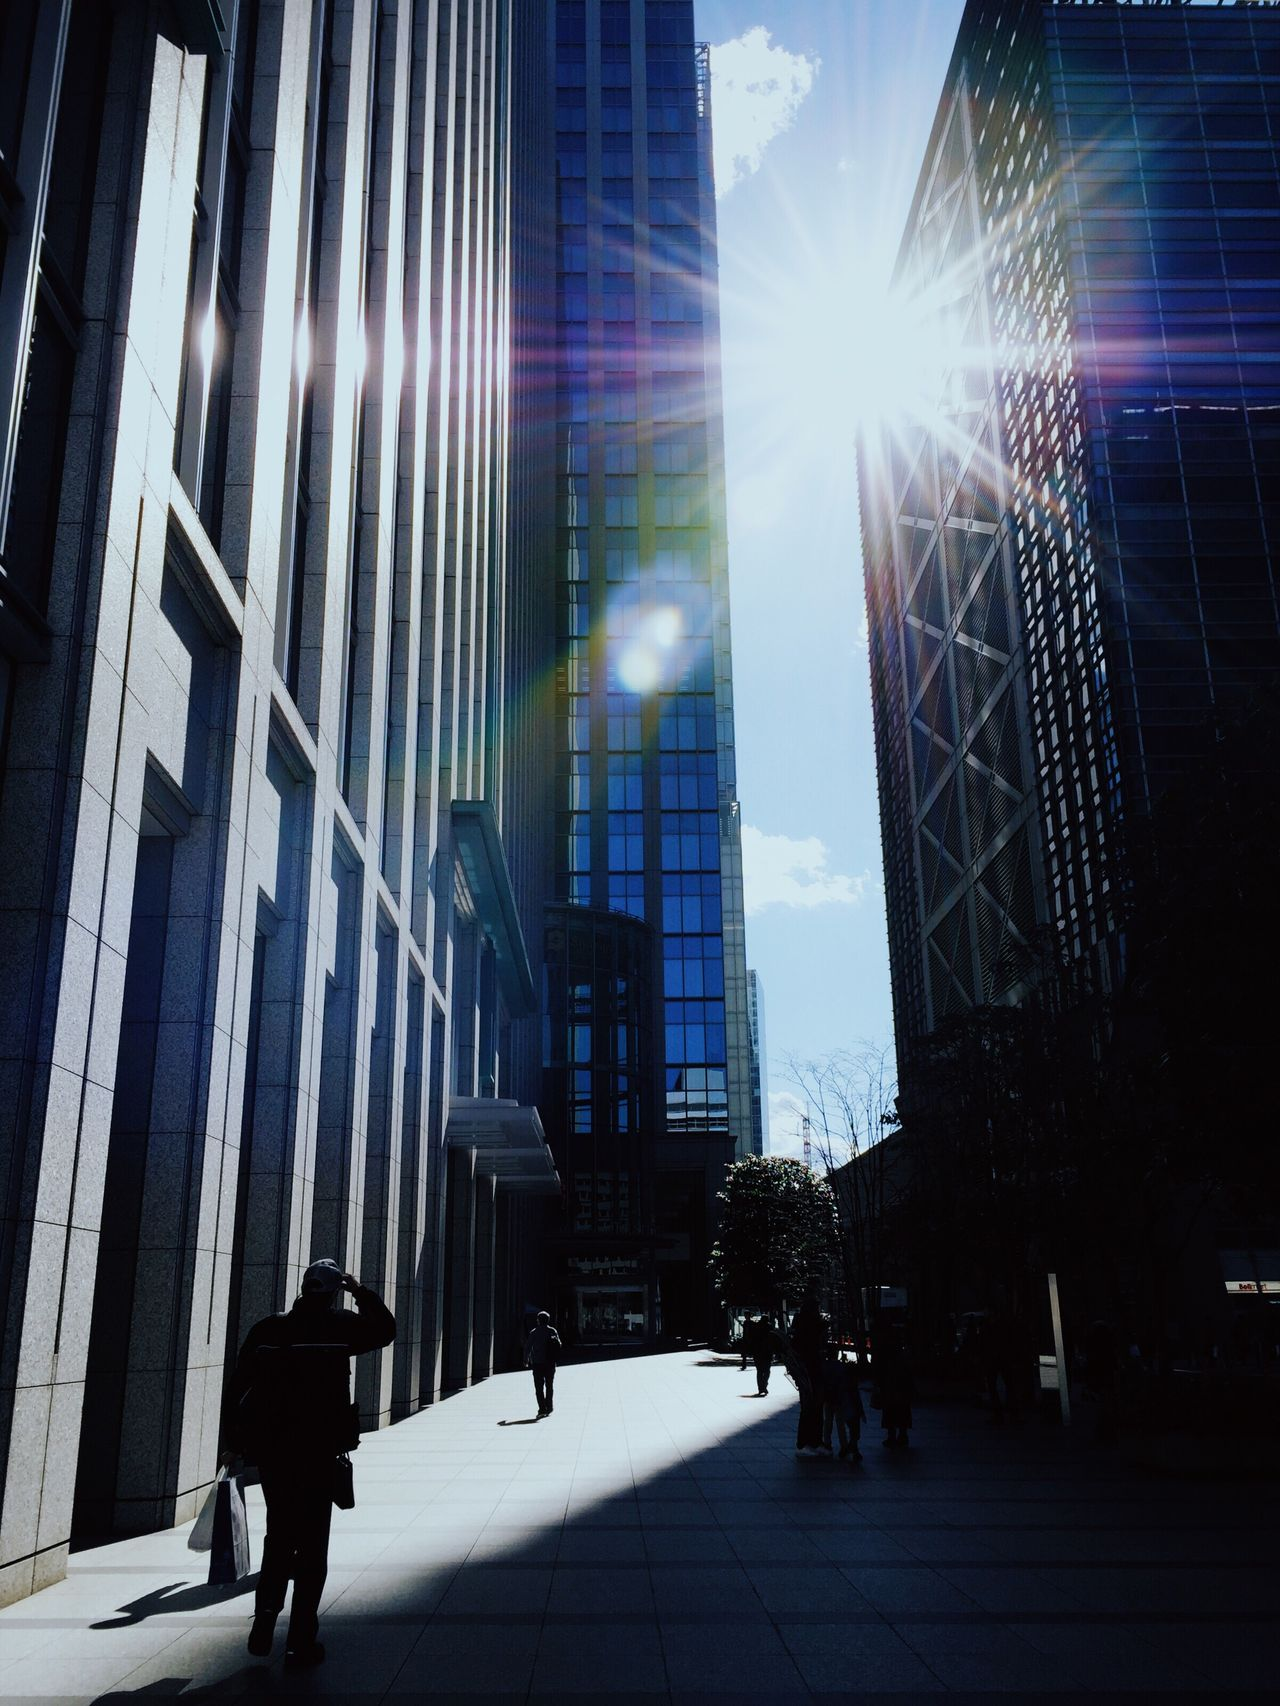 Architecture Built Structure Real People Building Exterior City Sunlight Sky Light And Shadow City Life Eyem Best Shots VSCO Mobilephotography Japan